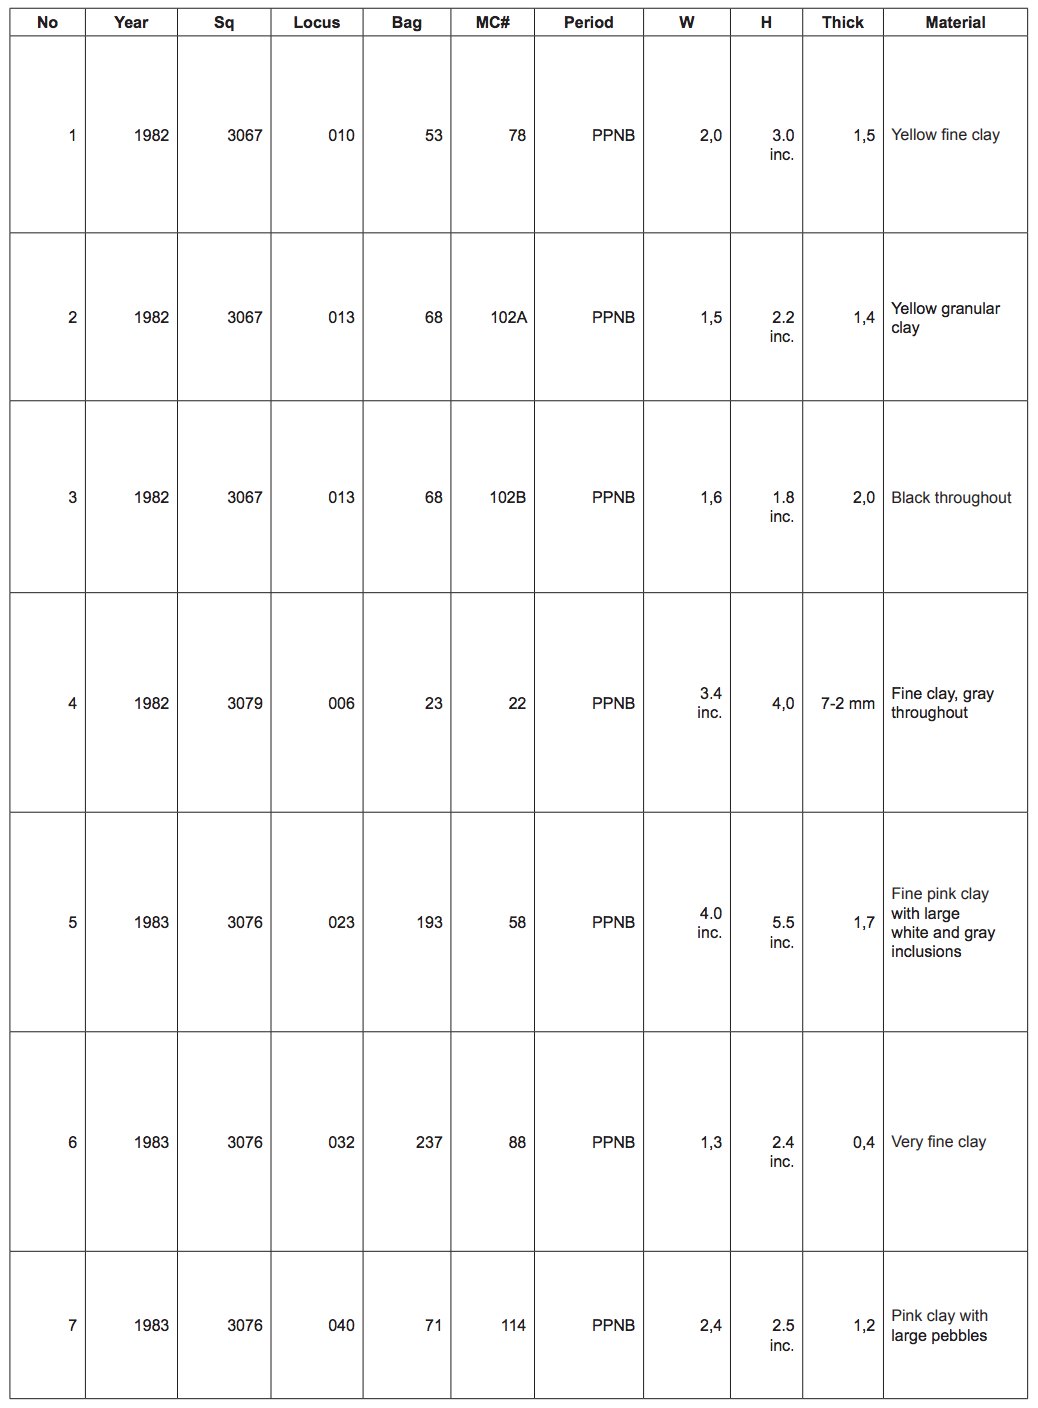 Table of catalogue with number, year, square, Locus, Bag, MC#, Period, Width, Height, Thickness, and Material.